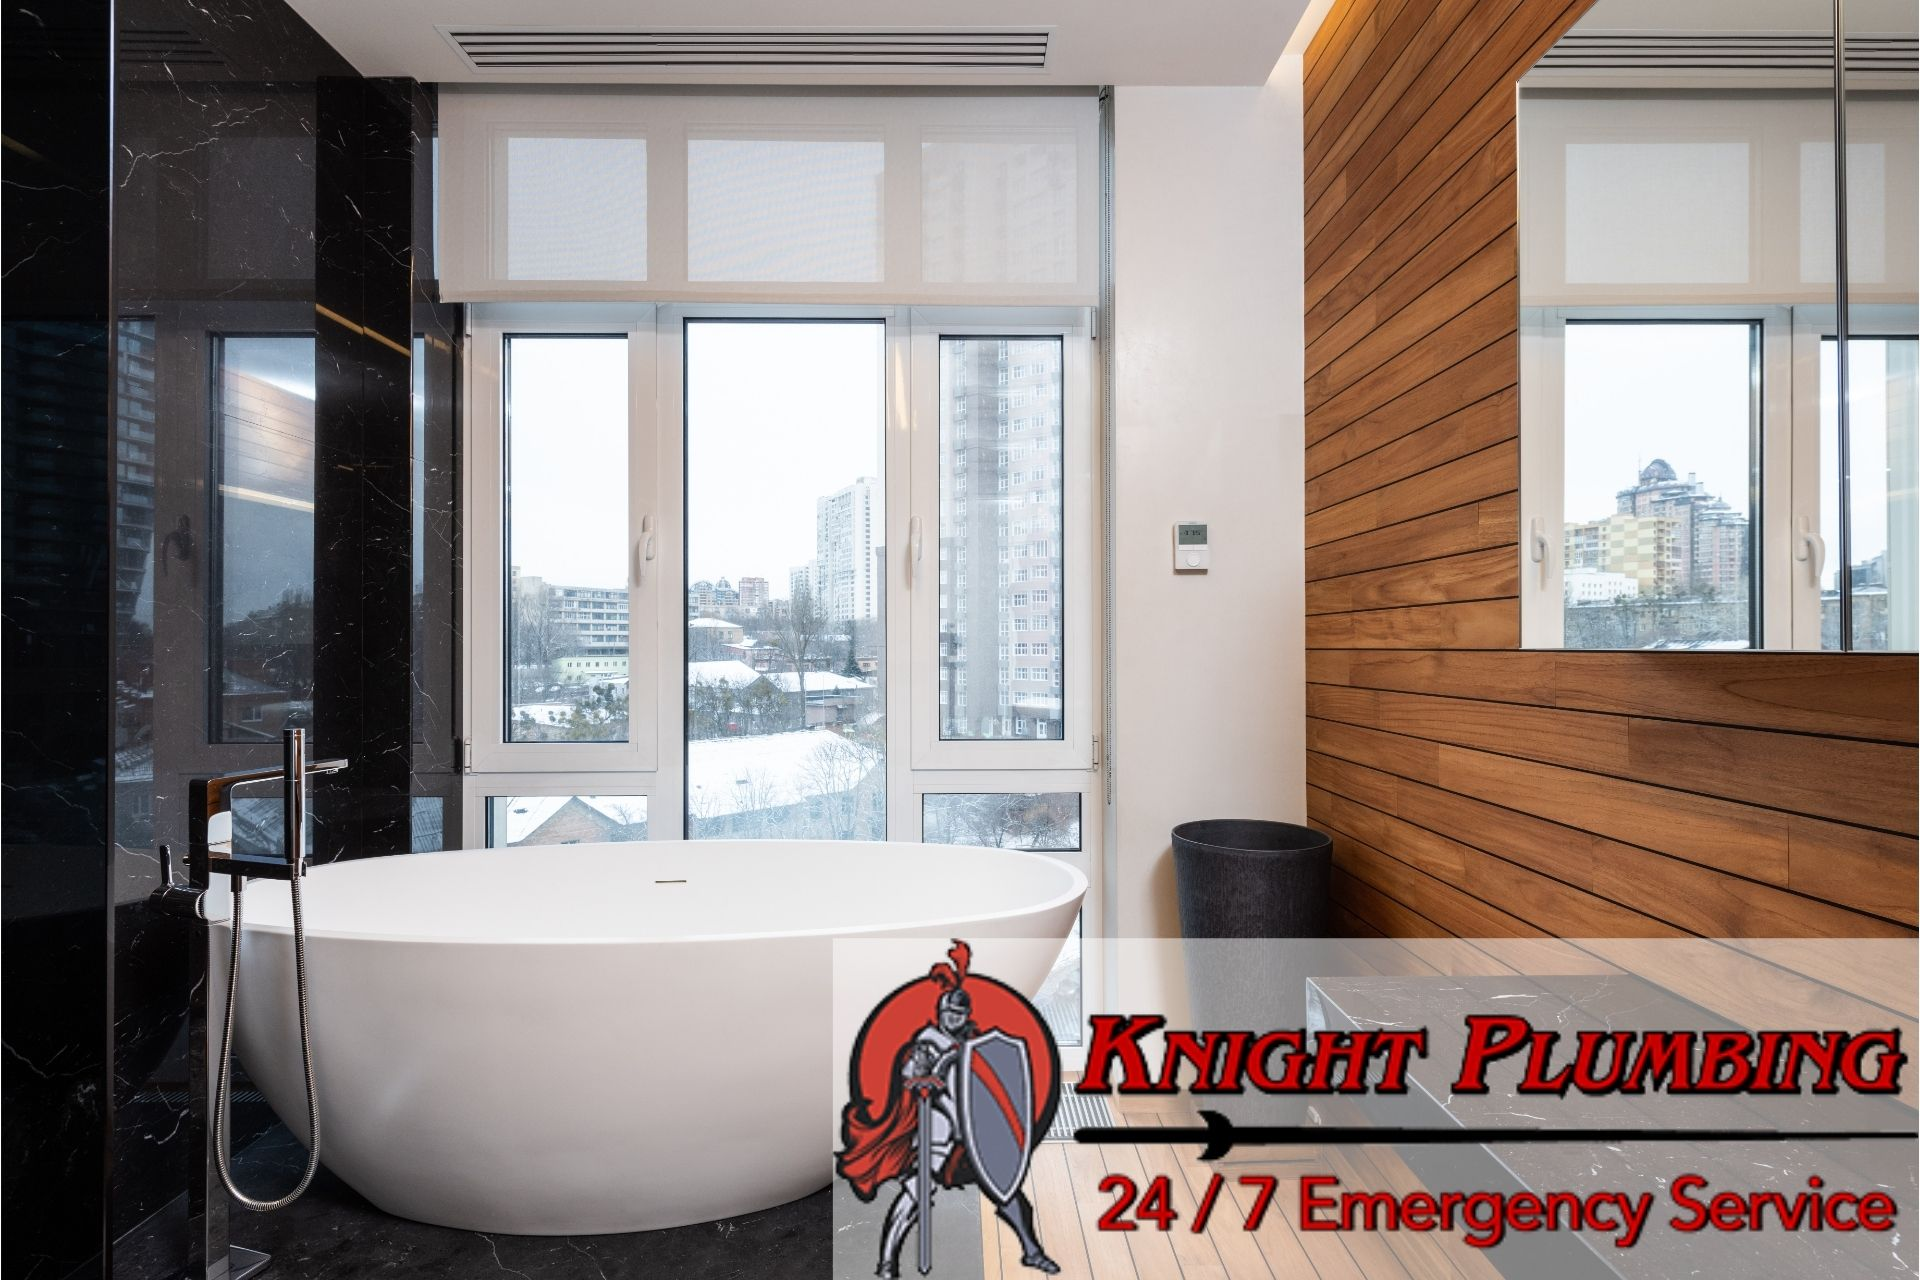 Plumbing Home Renovations You Haven't Thought Of